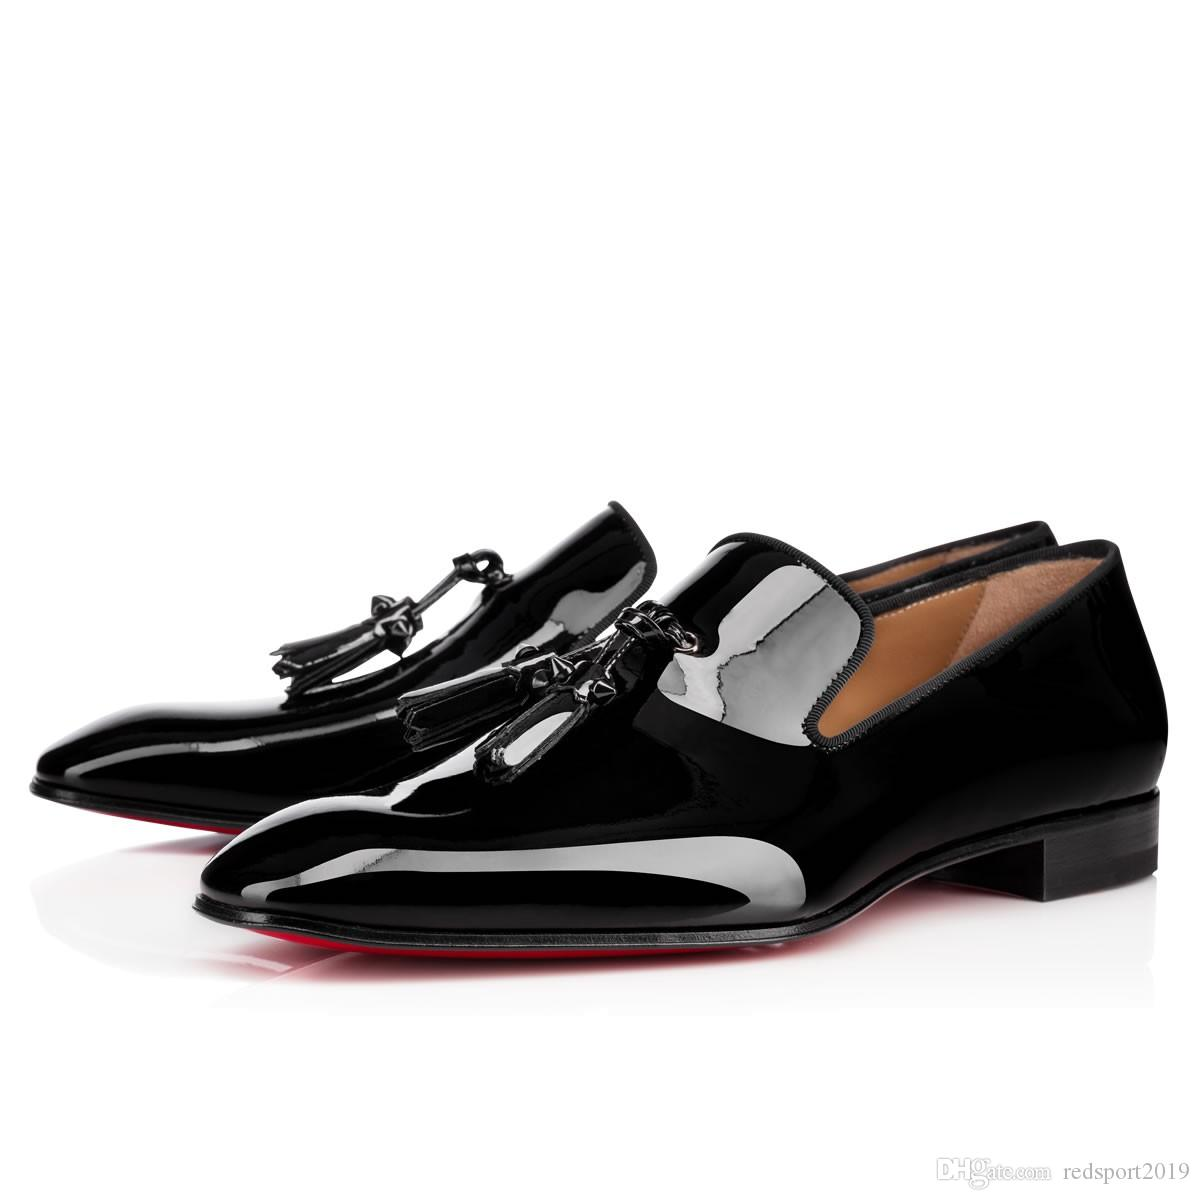 New Luxuious Red Bottom Oxford Shoes For Women,Men Square Toe Footwear Dandelion Tassel Flat Slip On Loafers With Dress Wedding Shoes